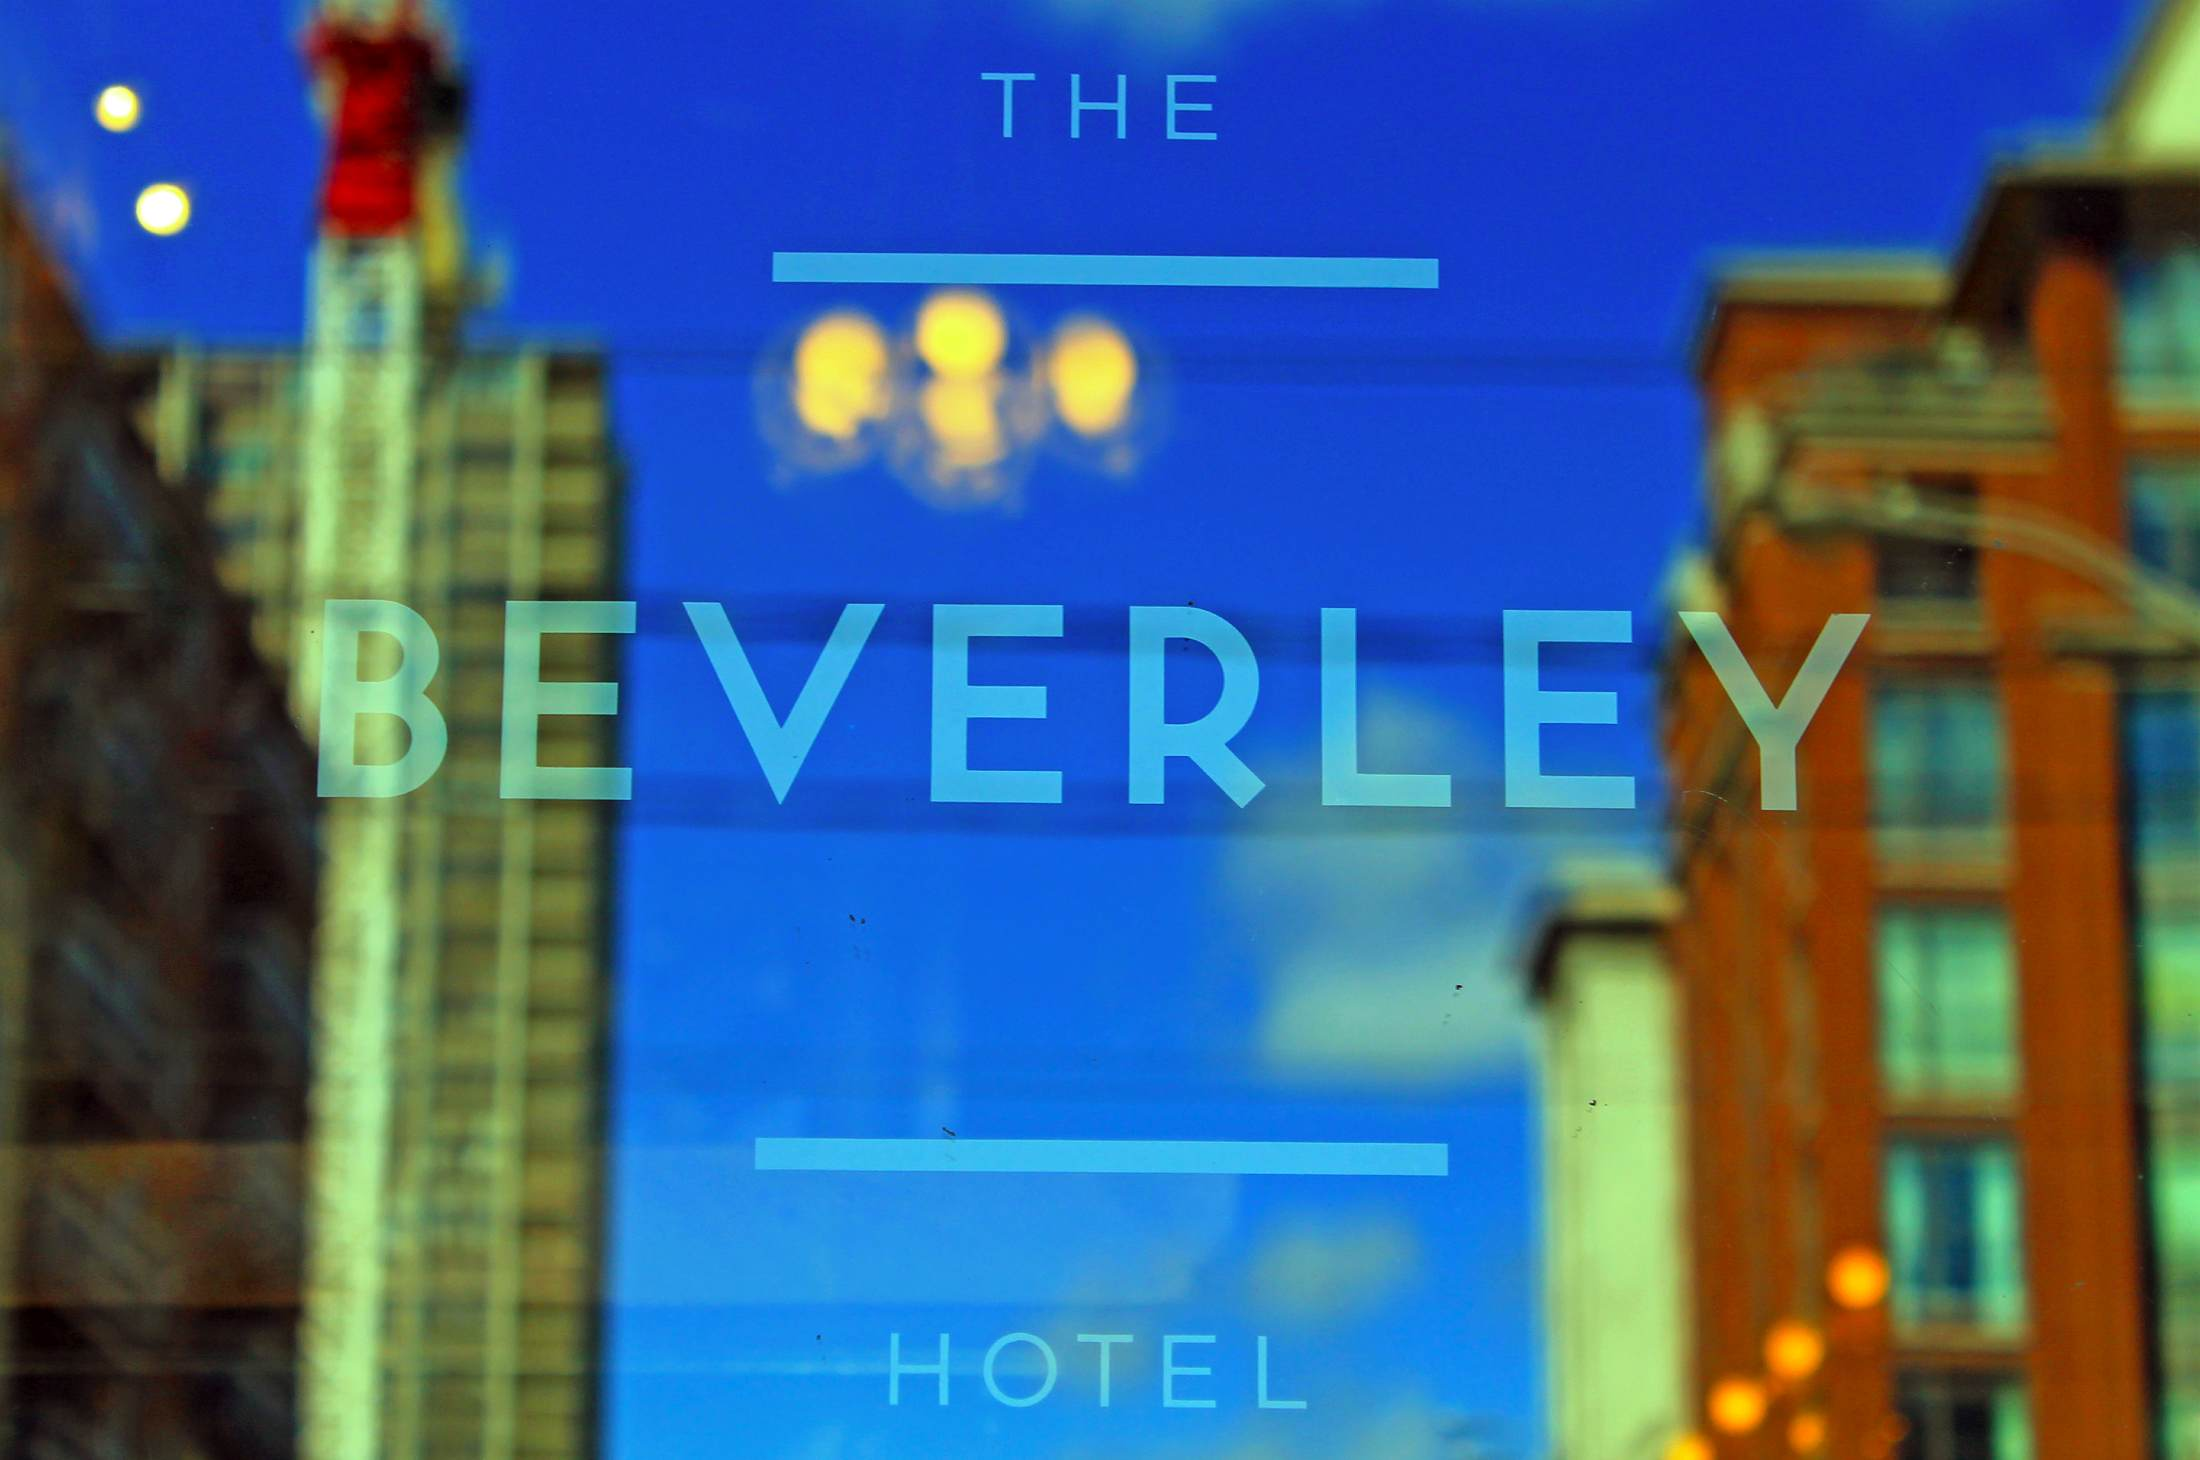 The Beverley Hotel - Focal Journey